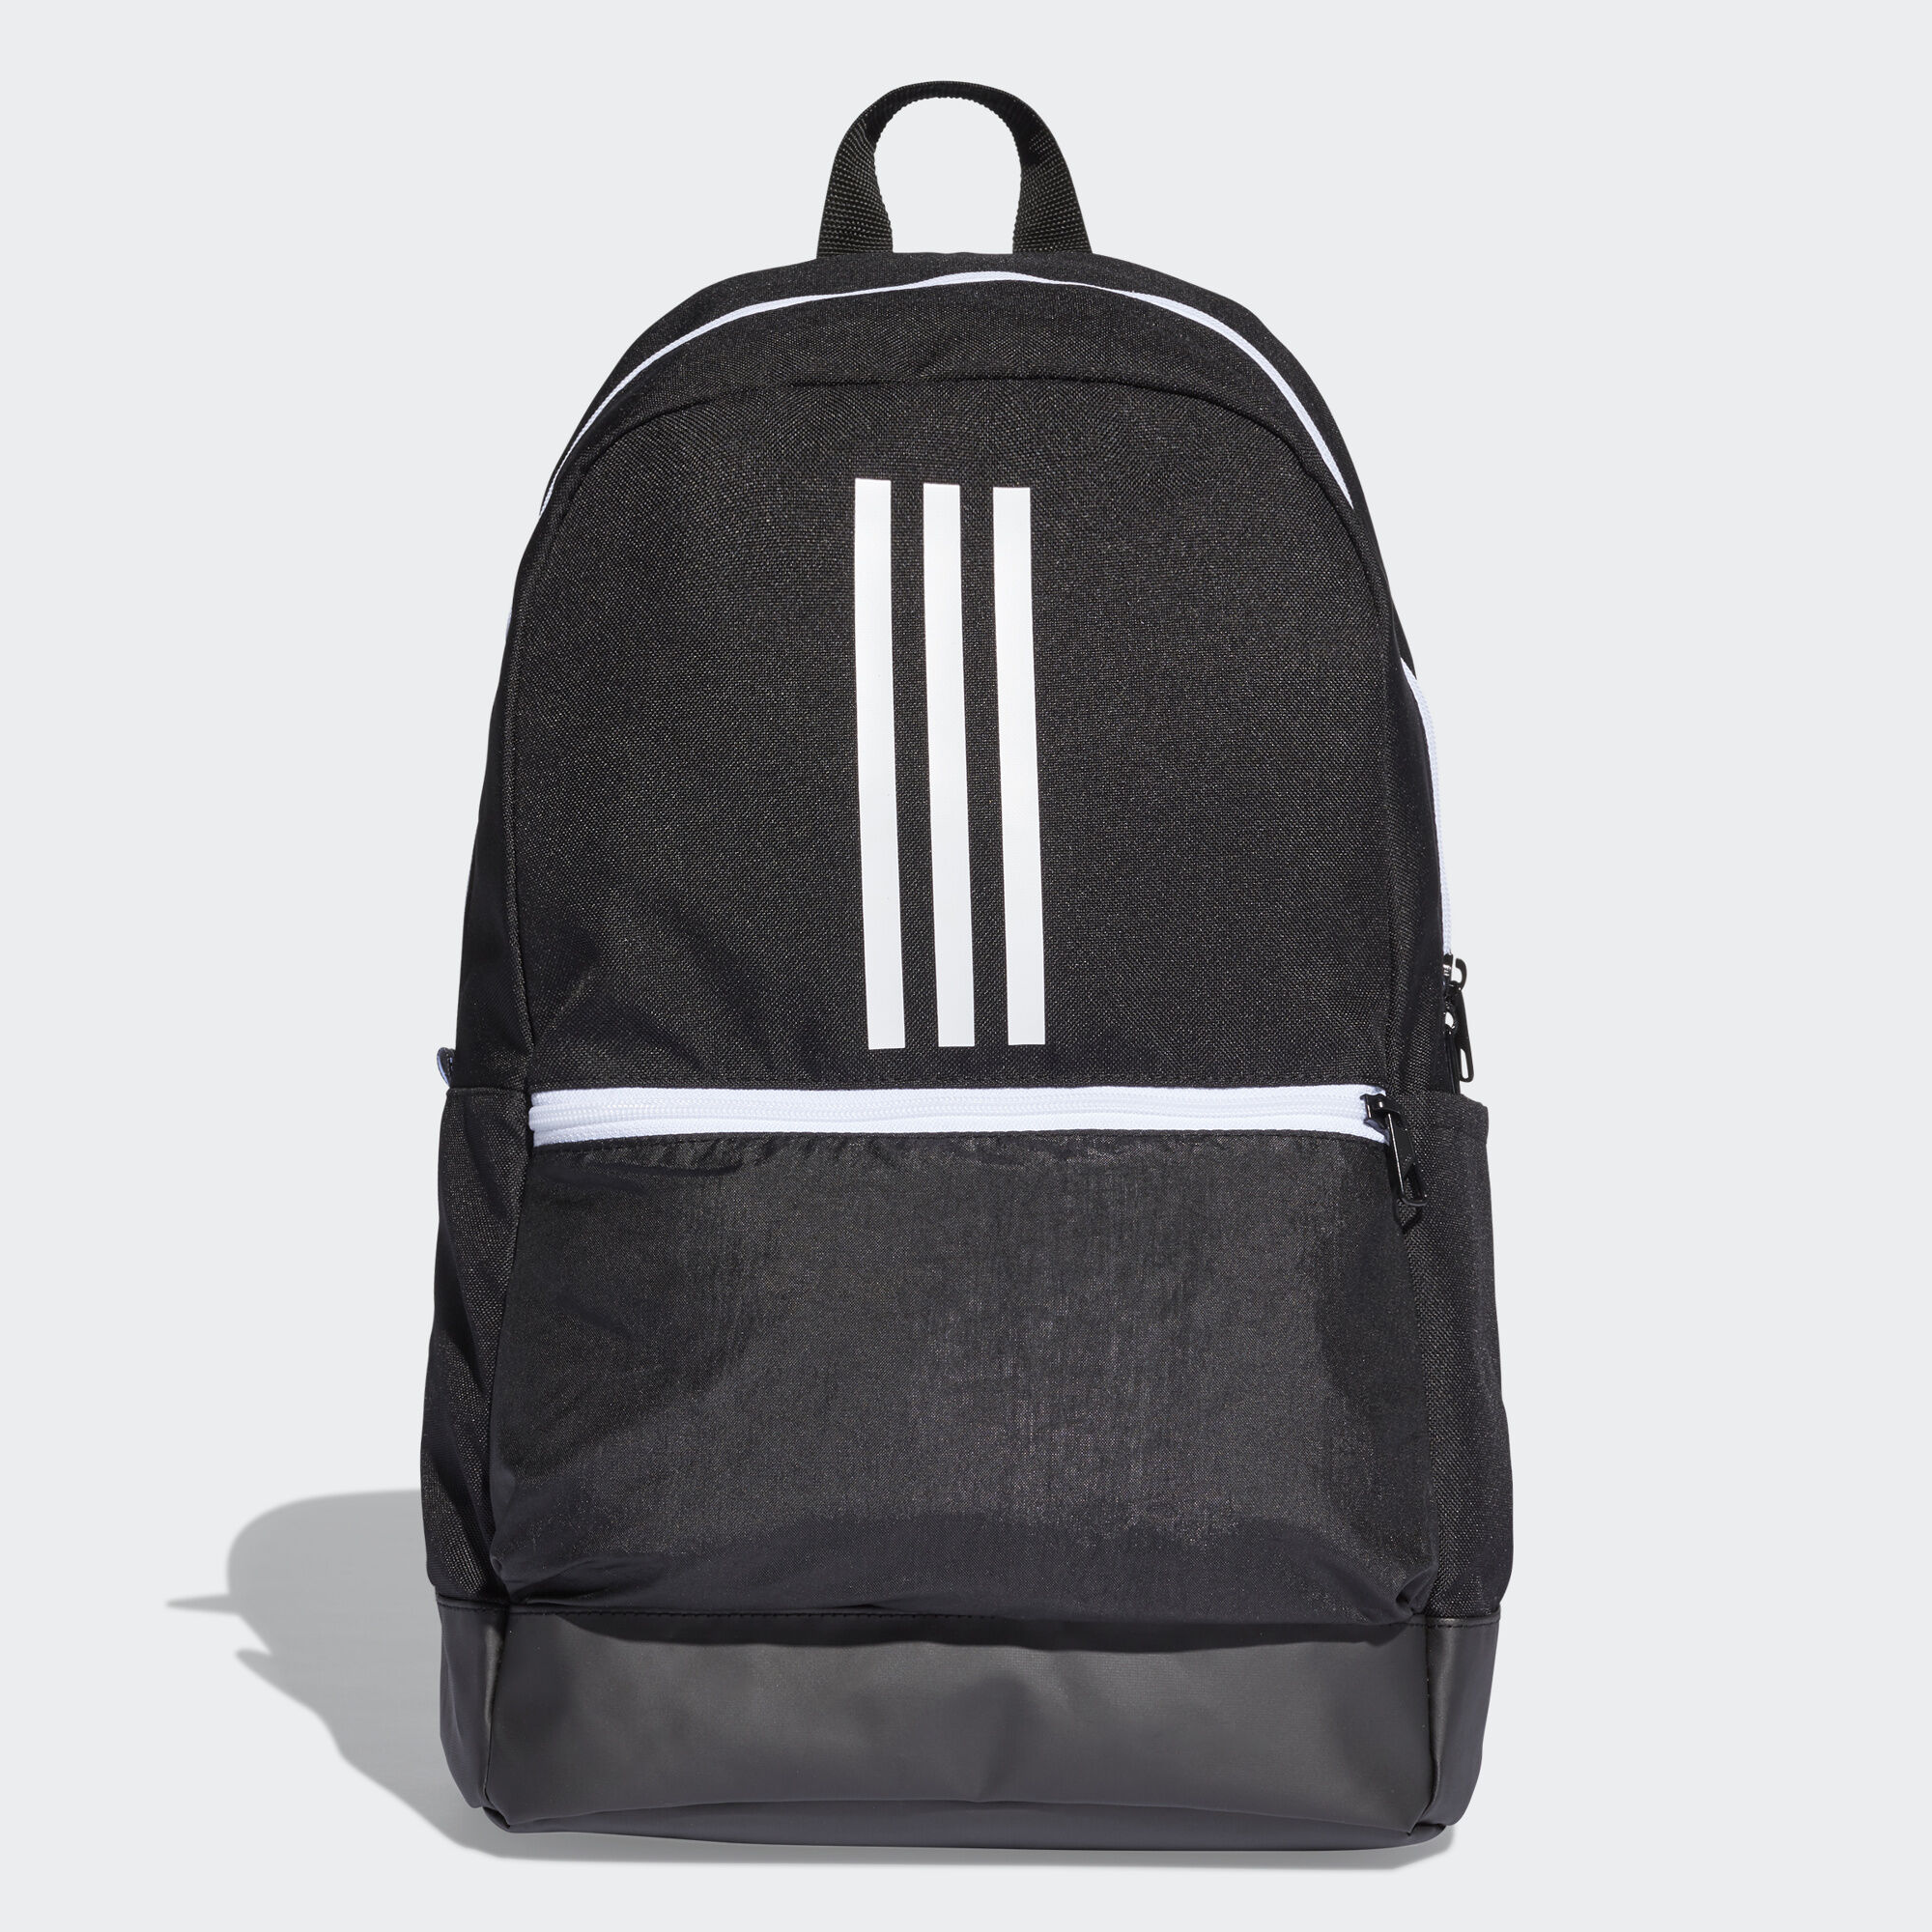 39b28ee66fe9 adidas - Classic 3-Stripes Backpack Black   Black   White DT2626. Training